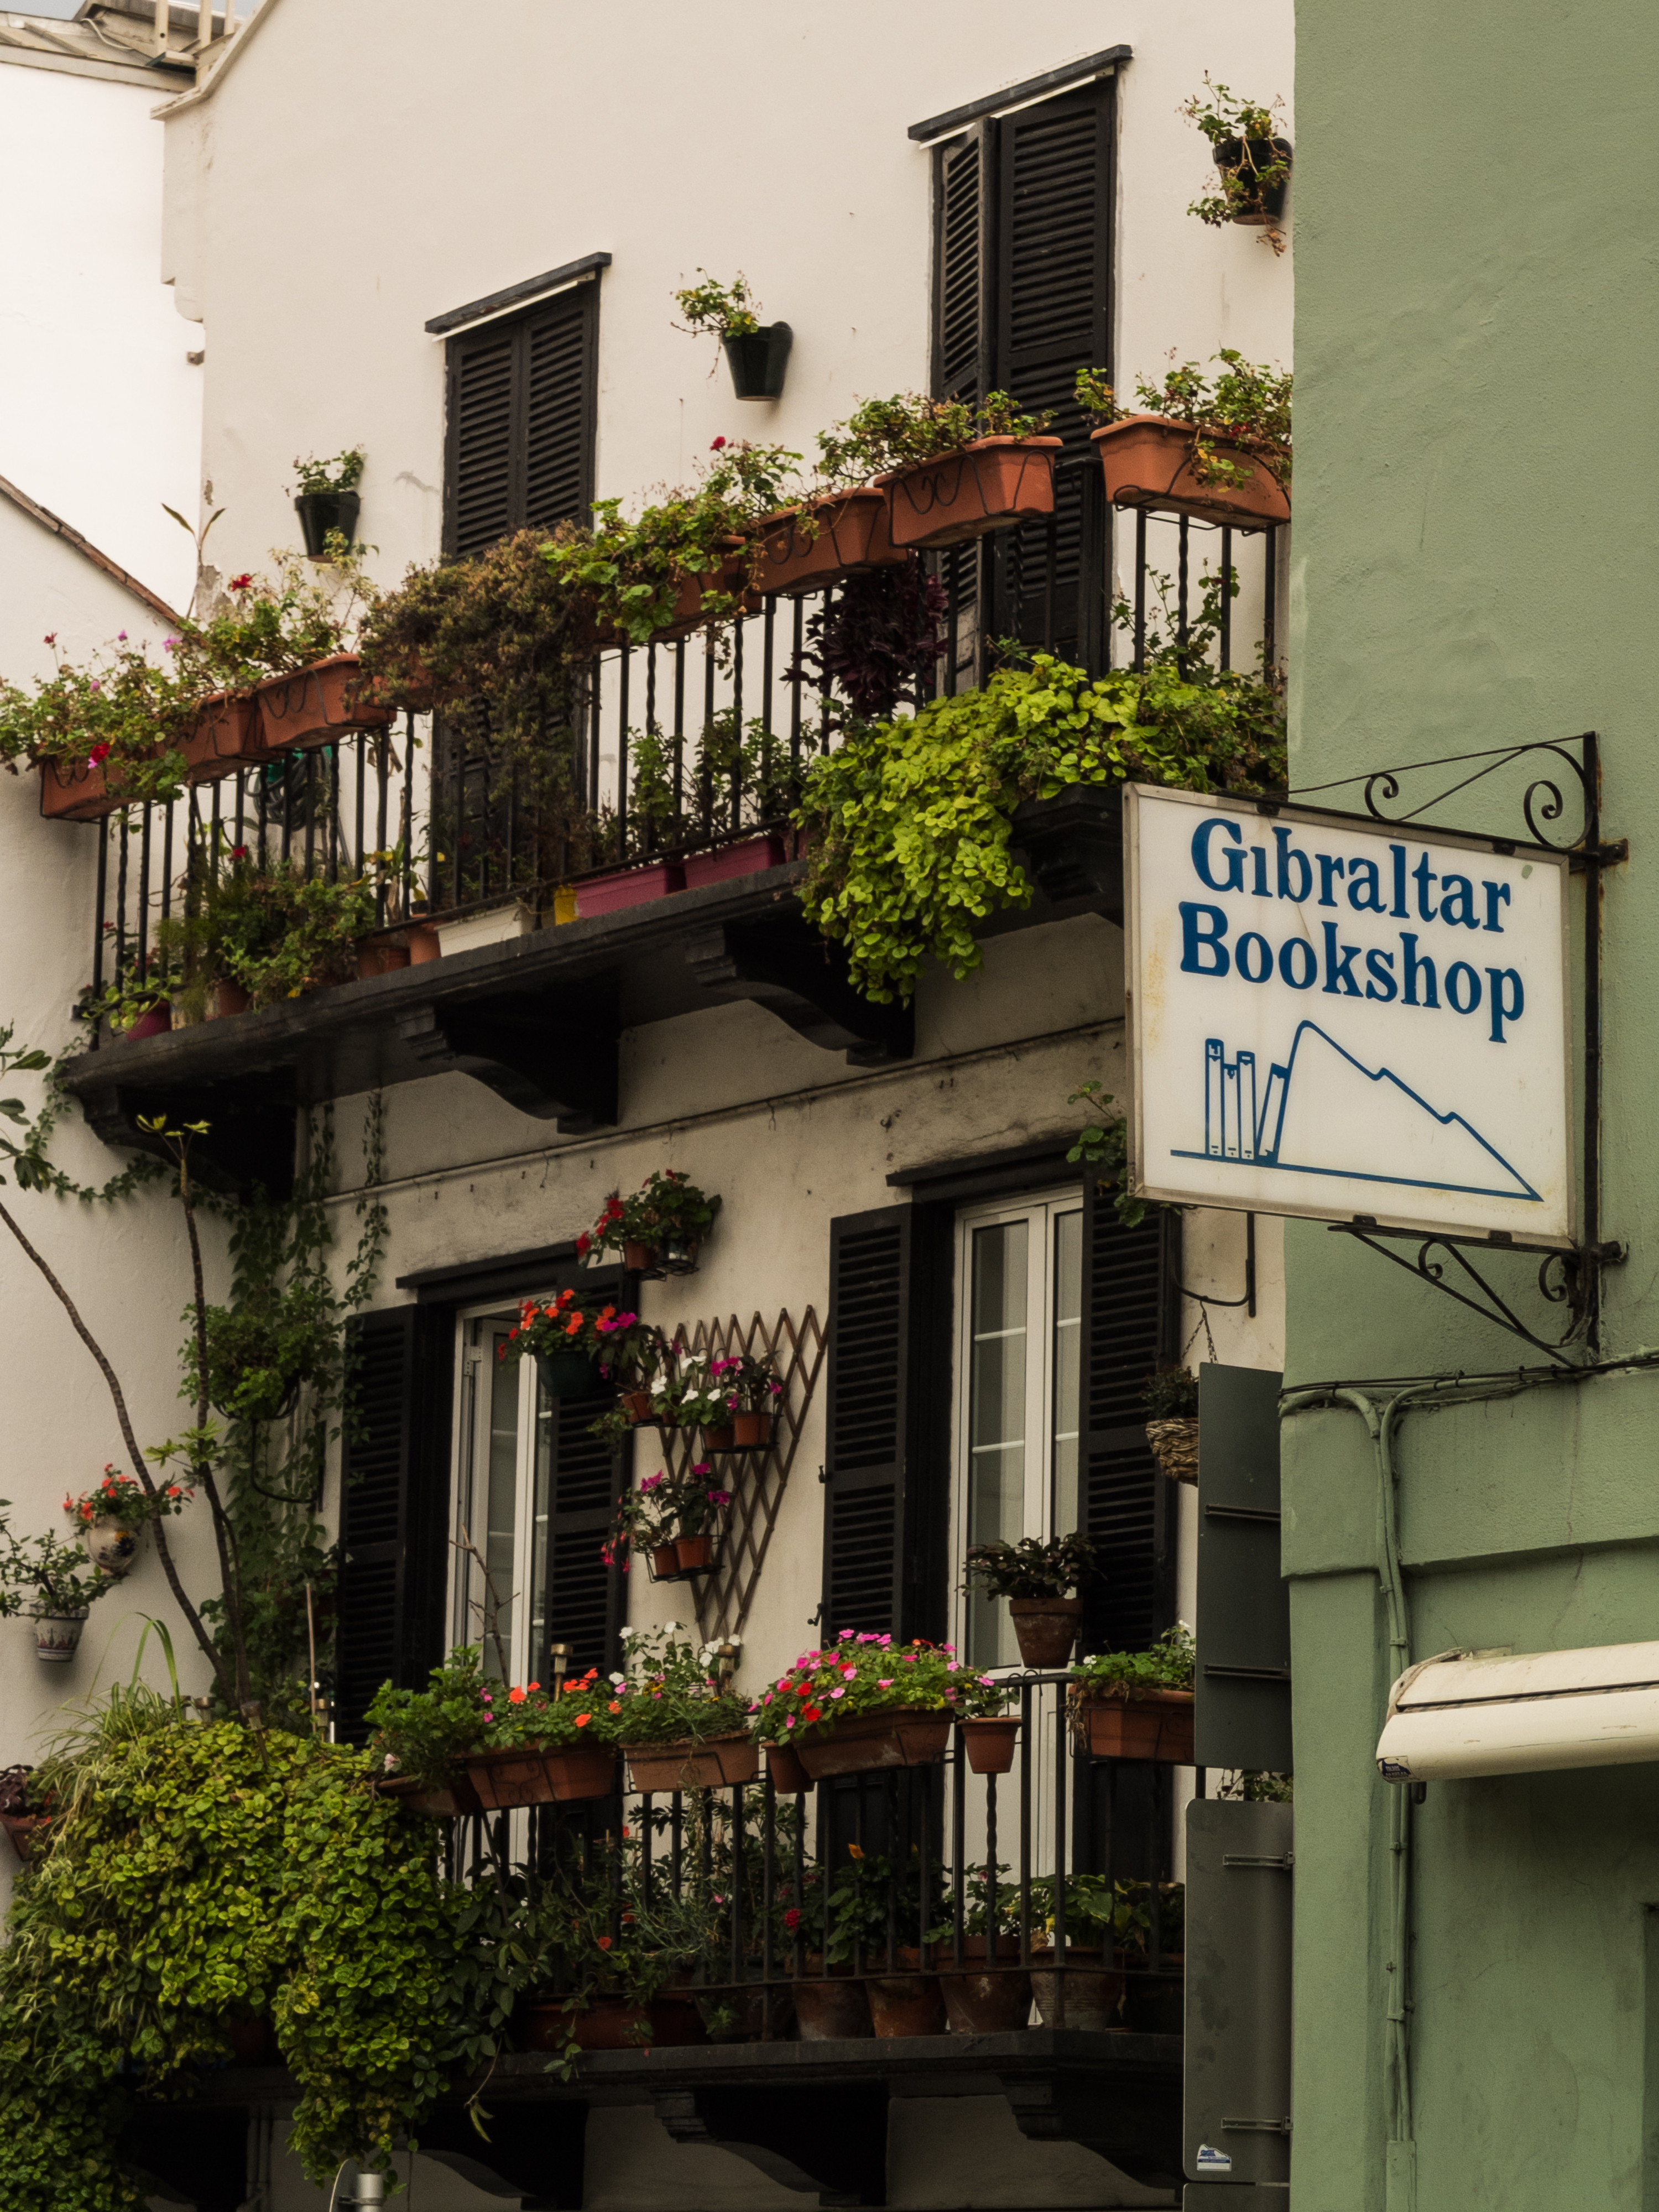 A sign for the Gibraltar Bookshop on the side of a green building.